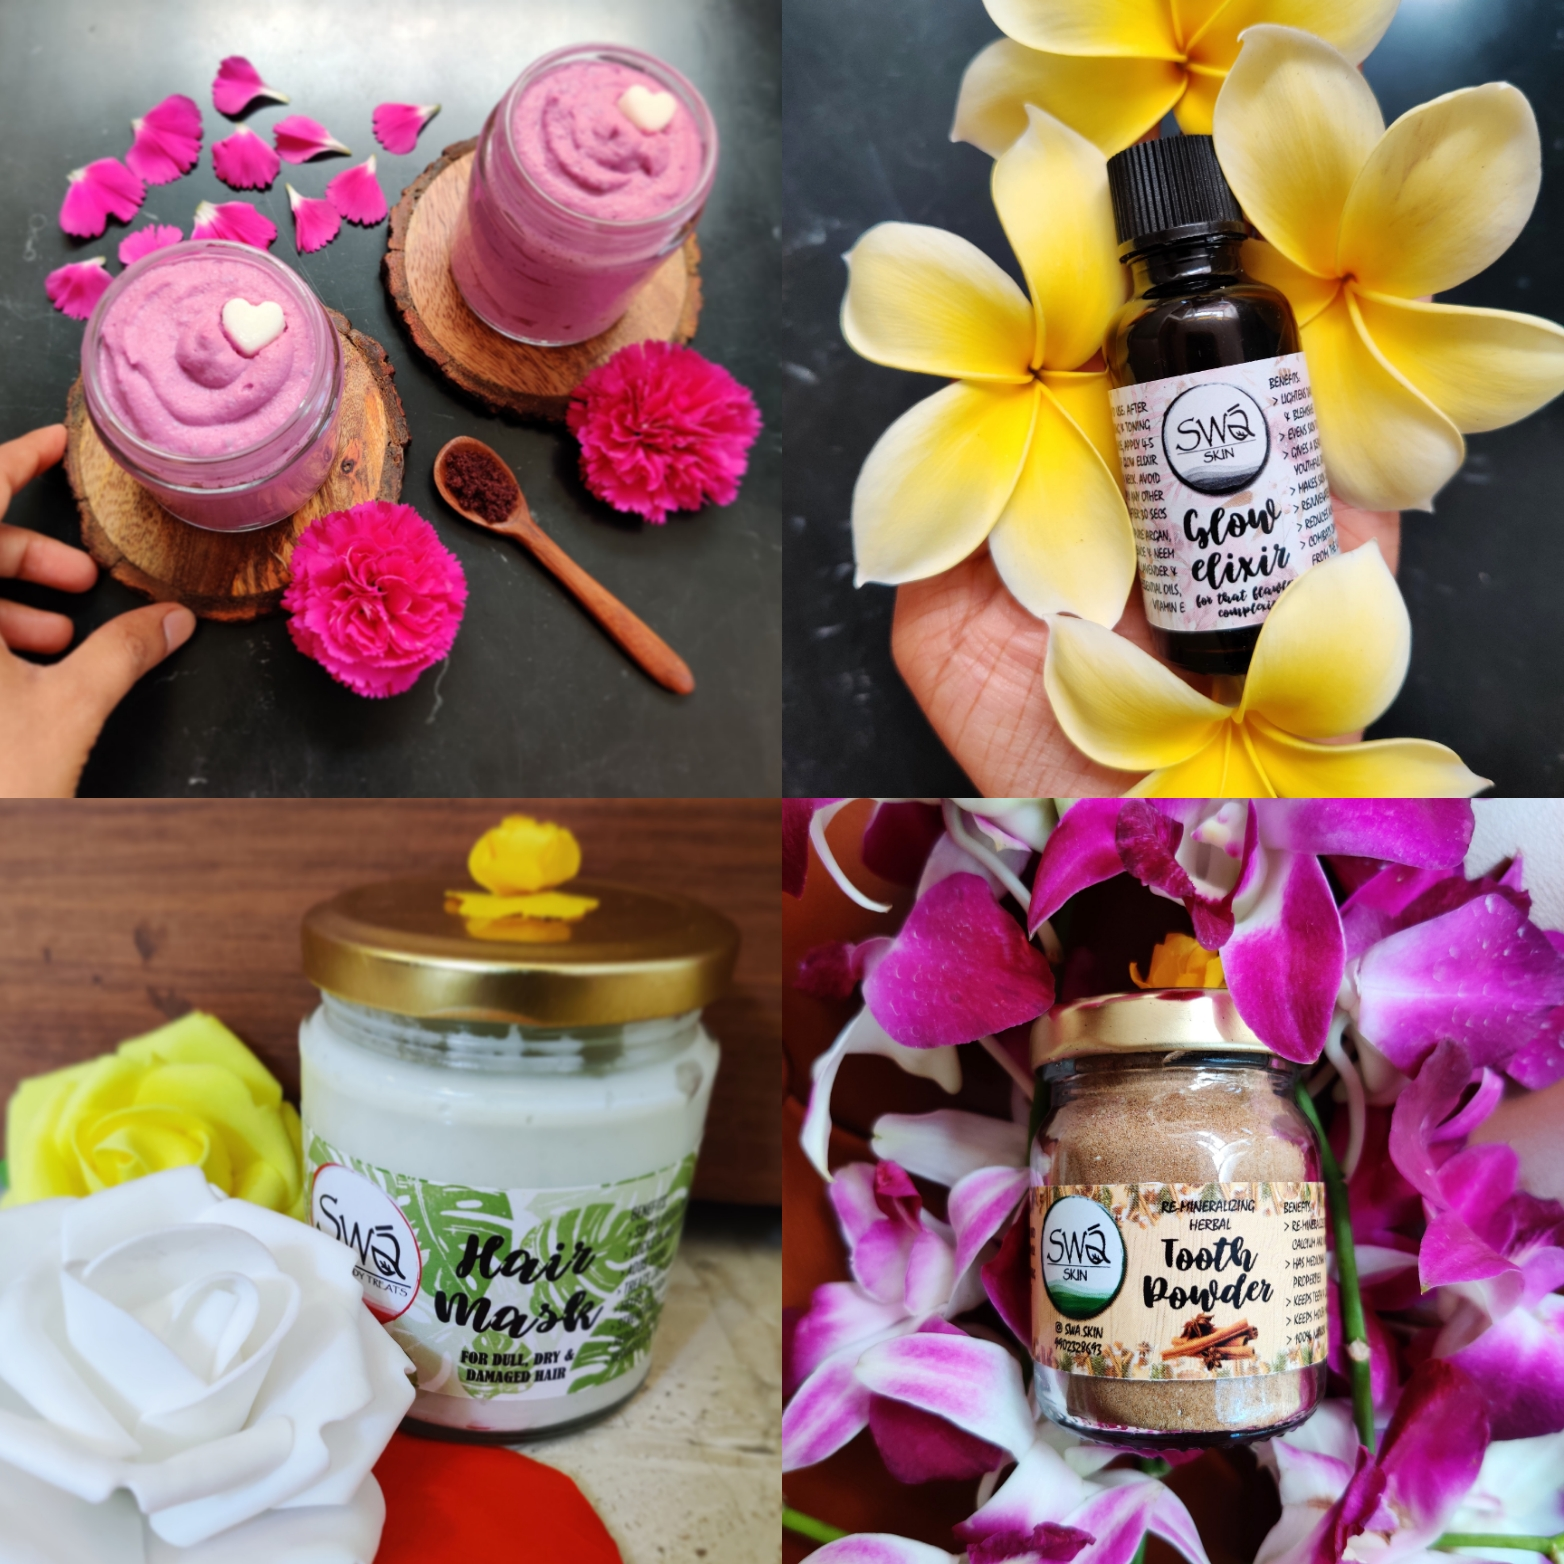 Handcrafted Organic Products from Swa Skin